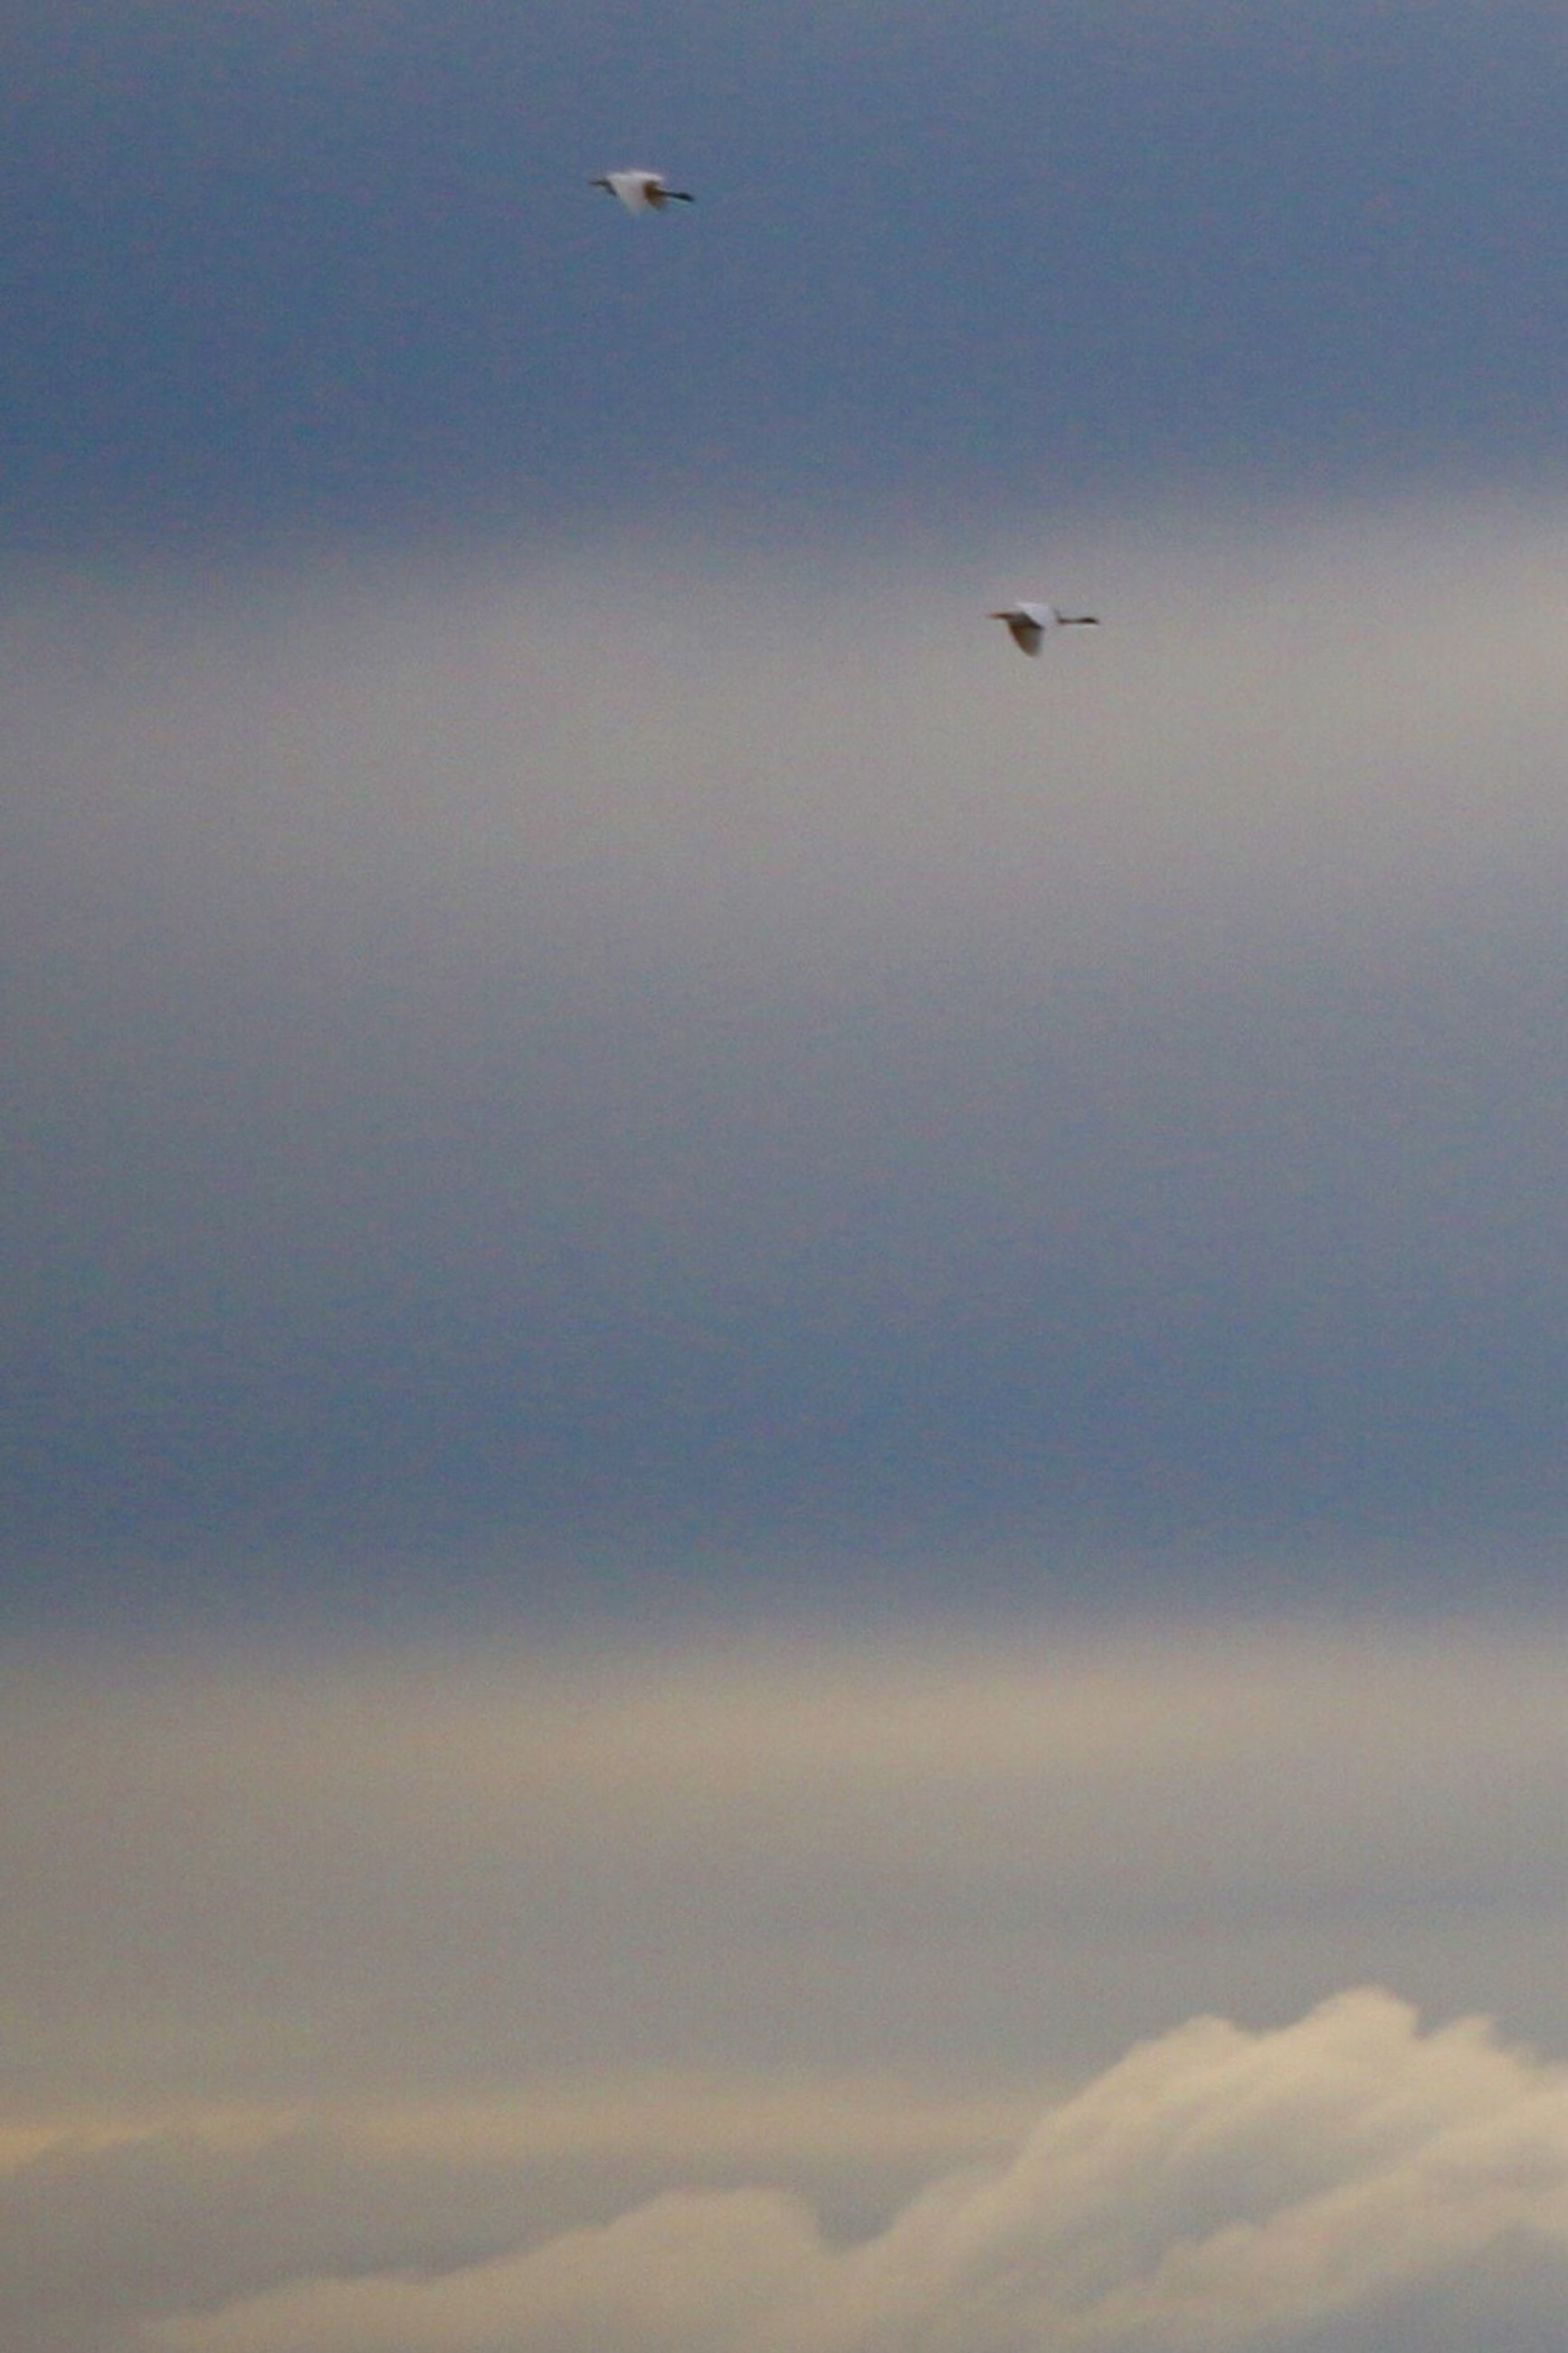 flying, bird, animal themes, animals in the wild, wildlife, mid-air, sky, one animal, low angle view, cloud - sky, nature, beauty in nature, spread wings, scenics, airplane, tranquility, outdoors, sunset, no people, tranquil scene